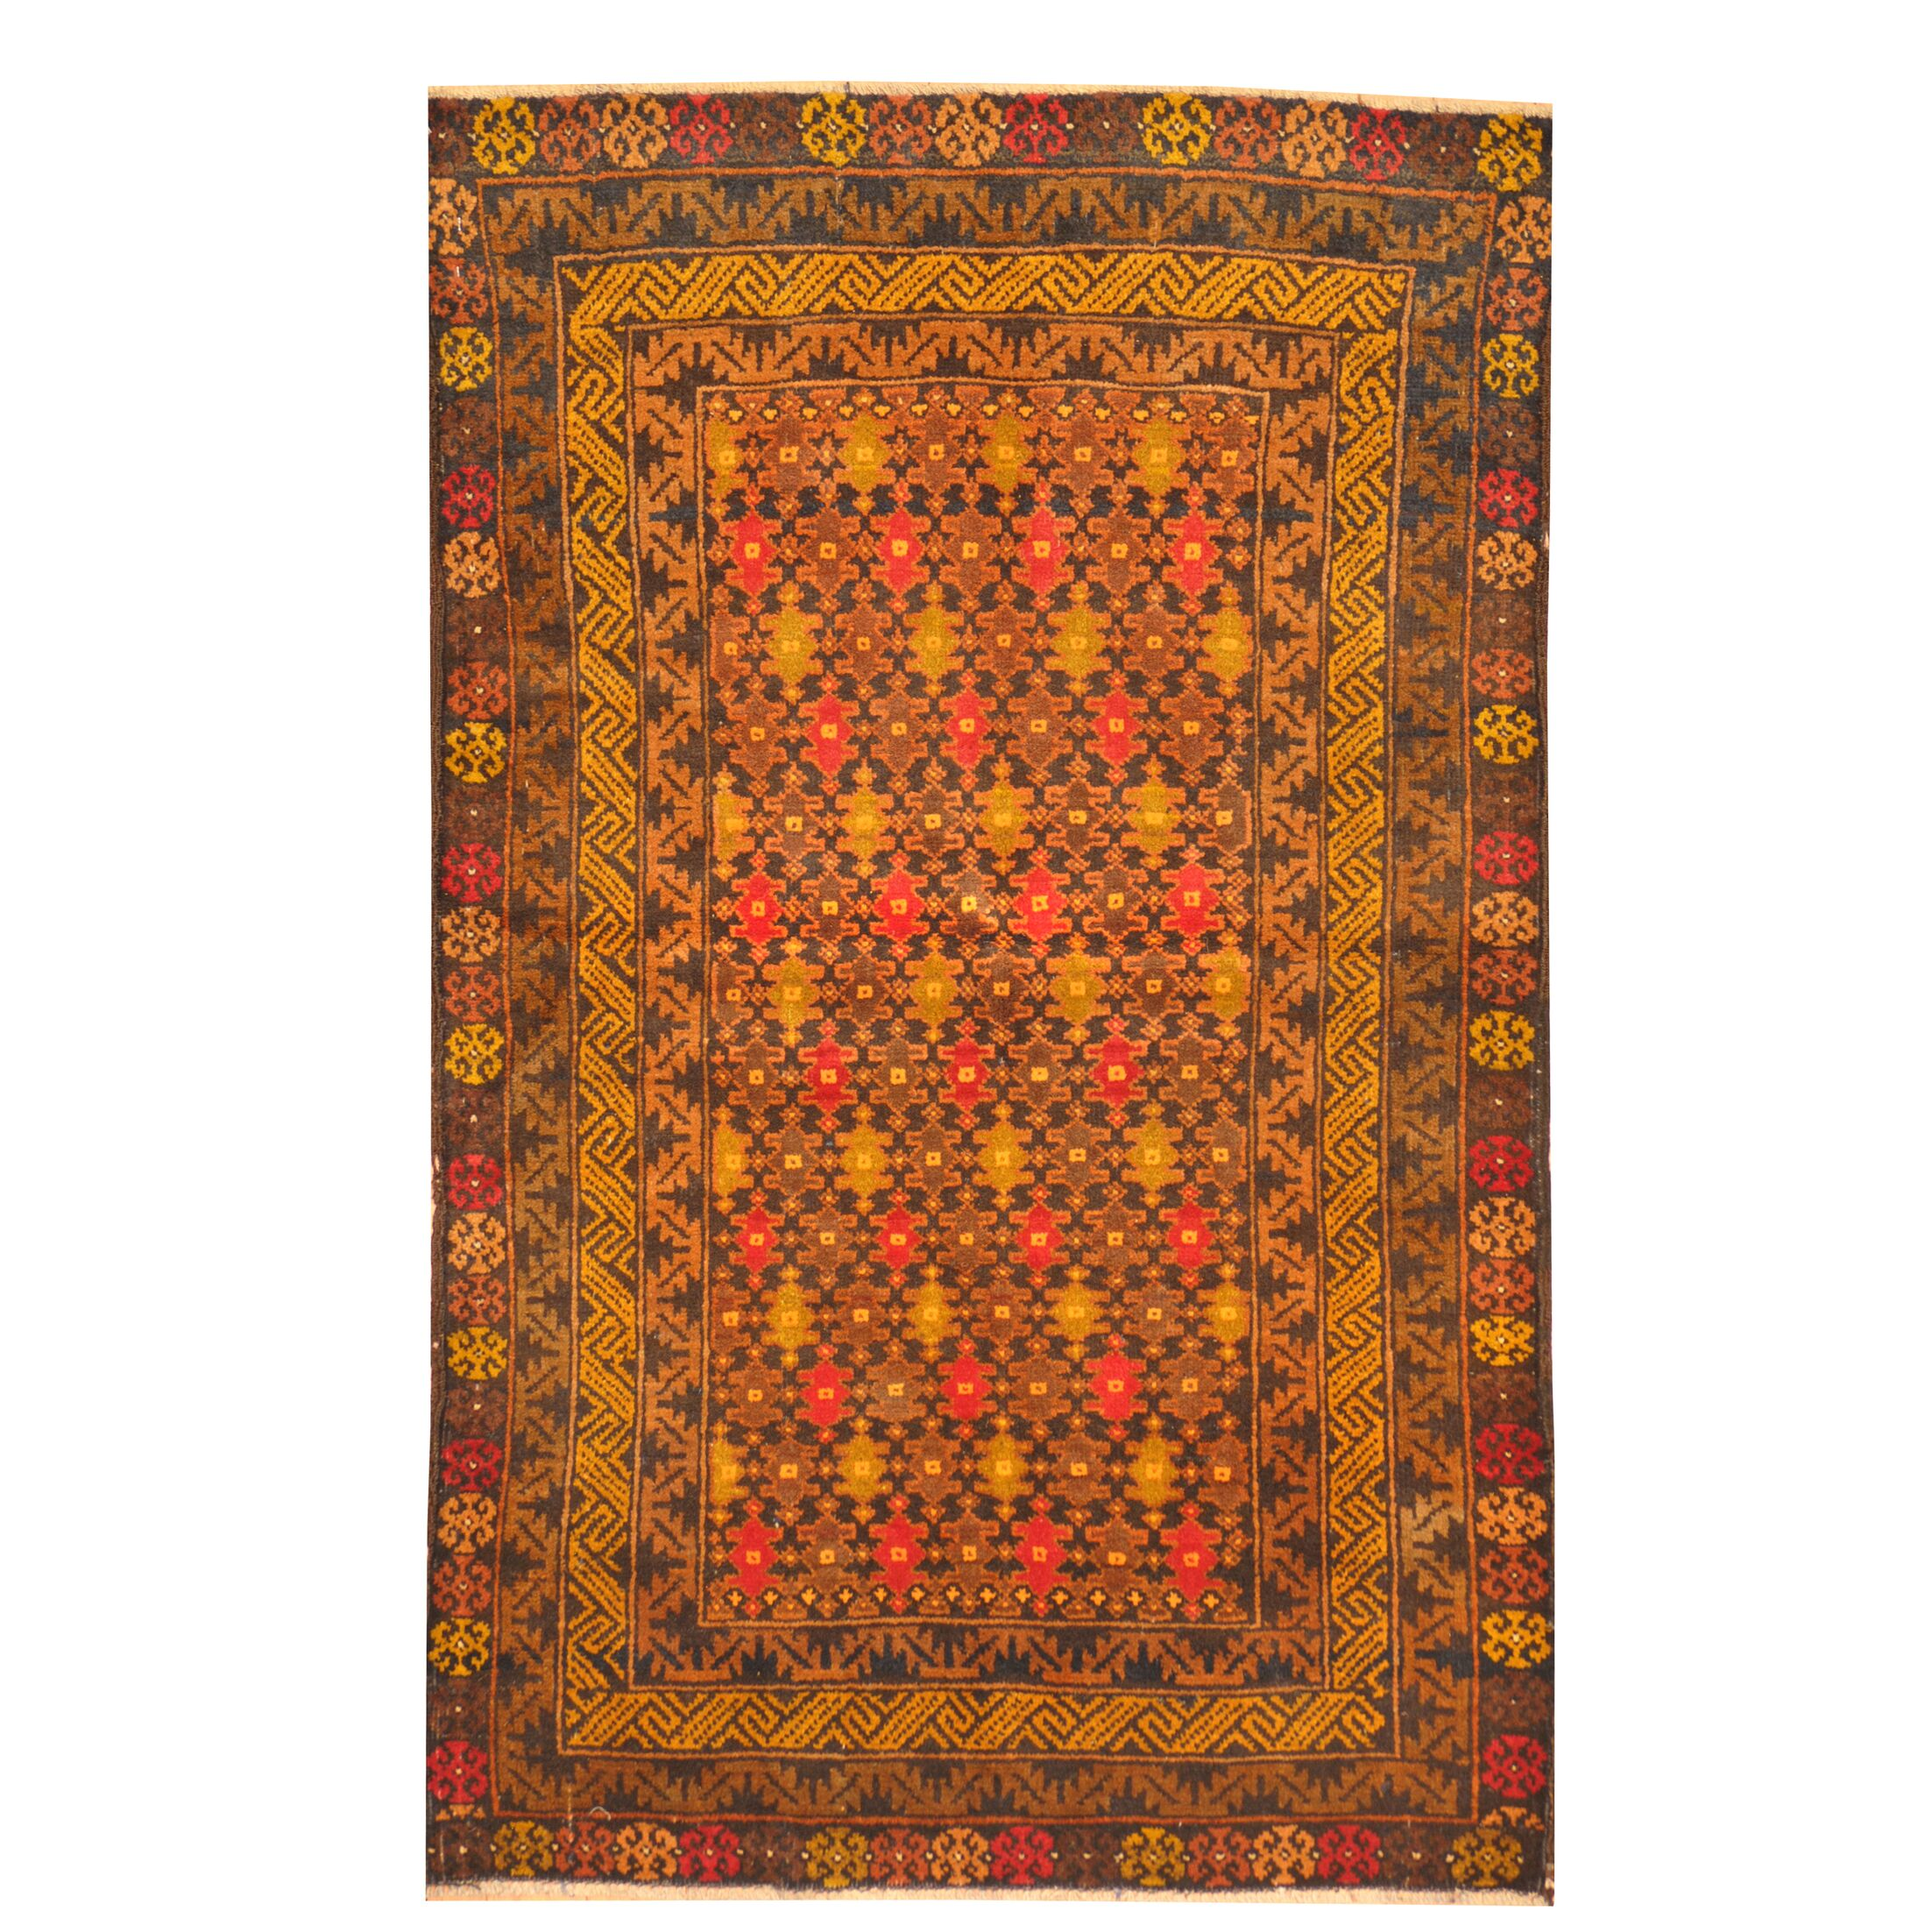 Prentice Hand Knotted Wool Red/Brown Area Rug